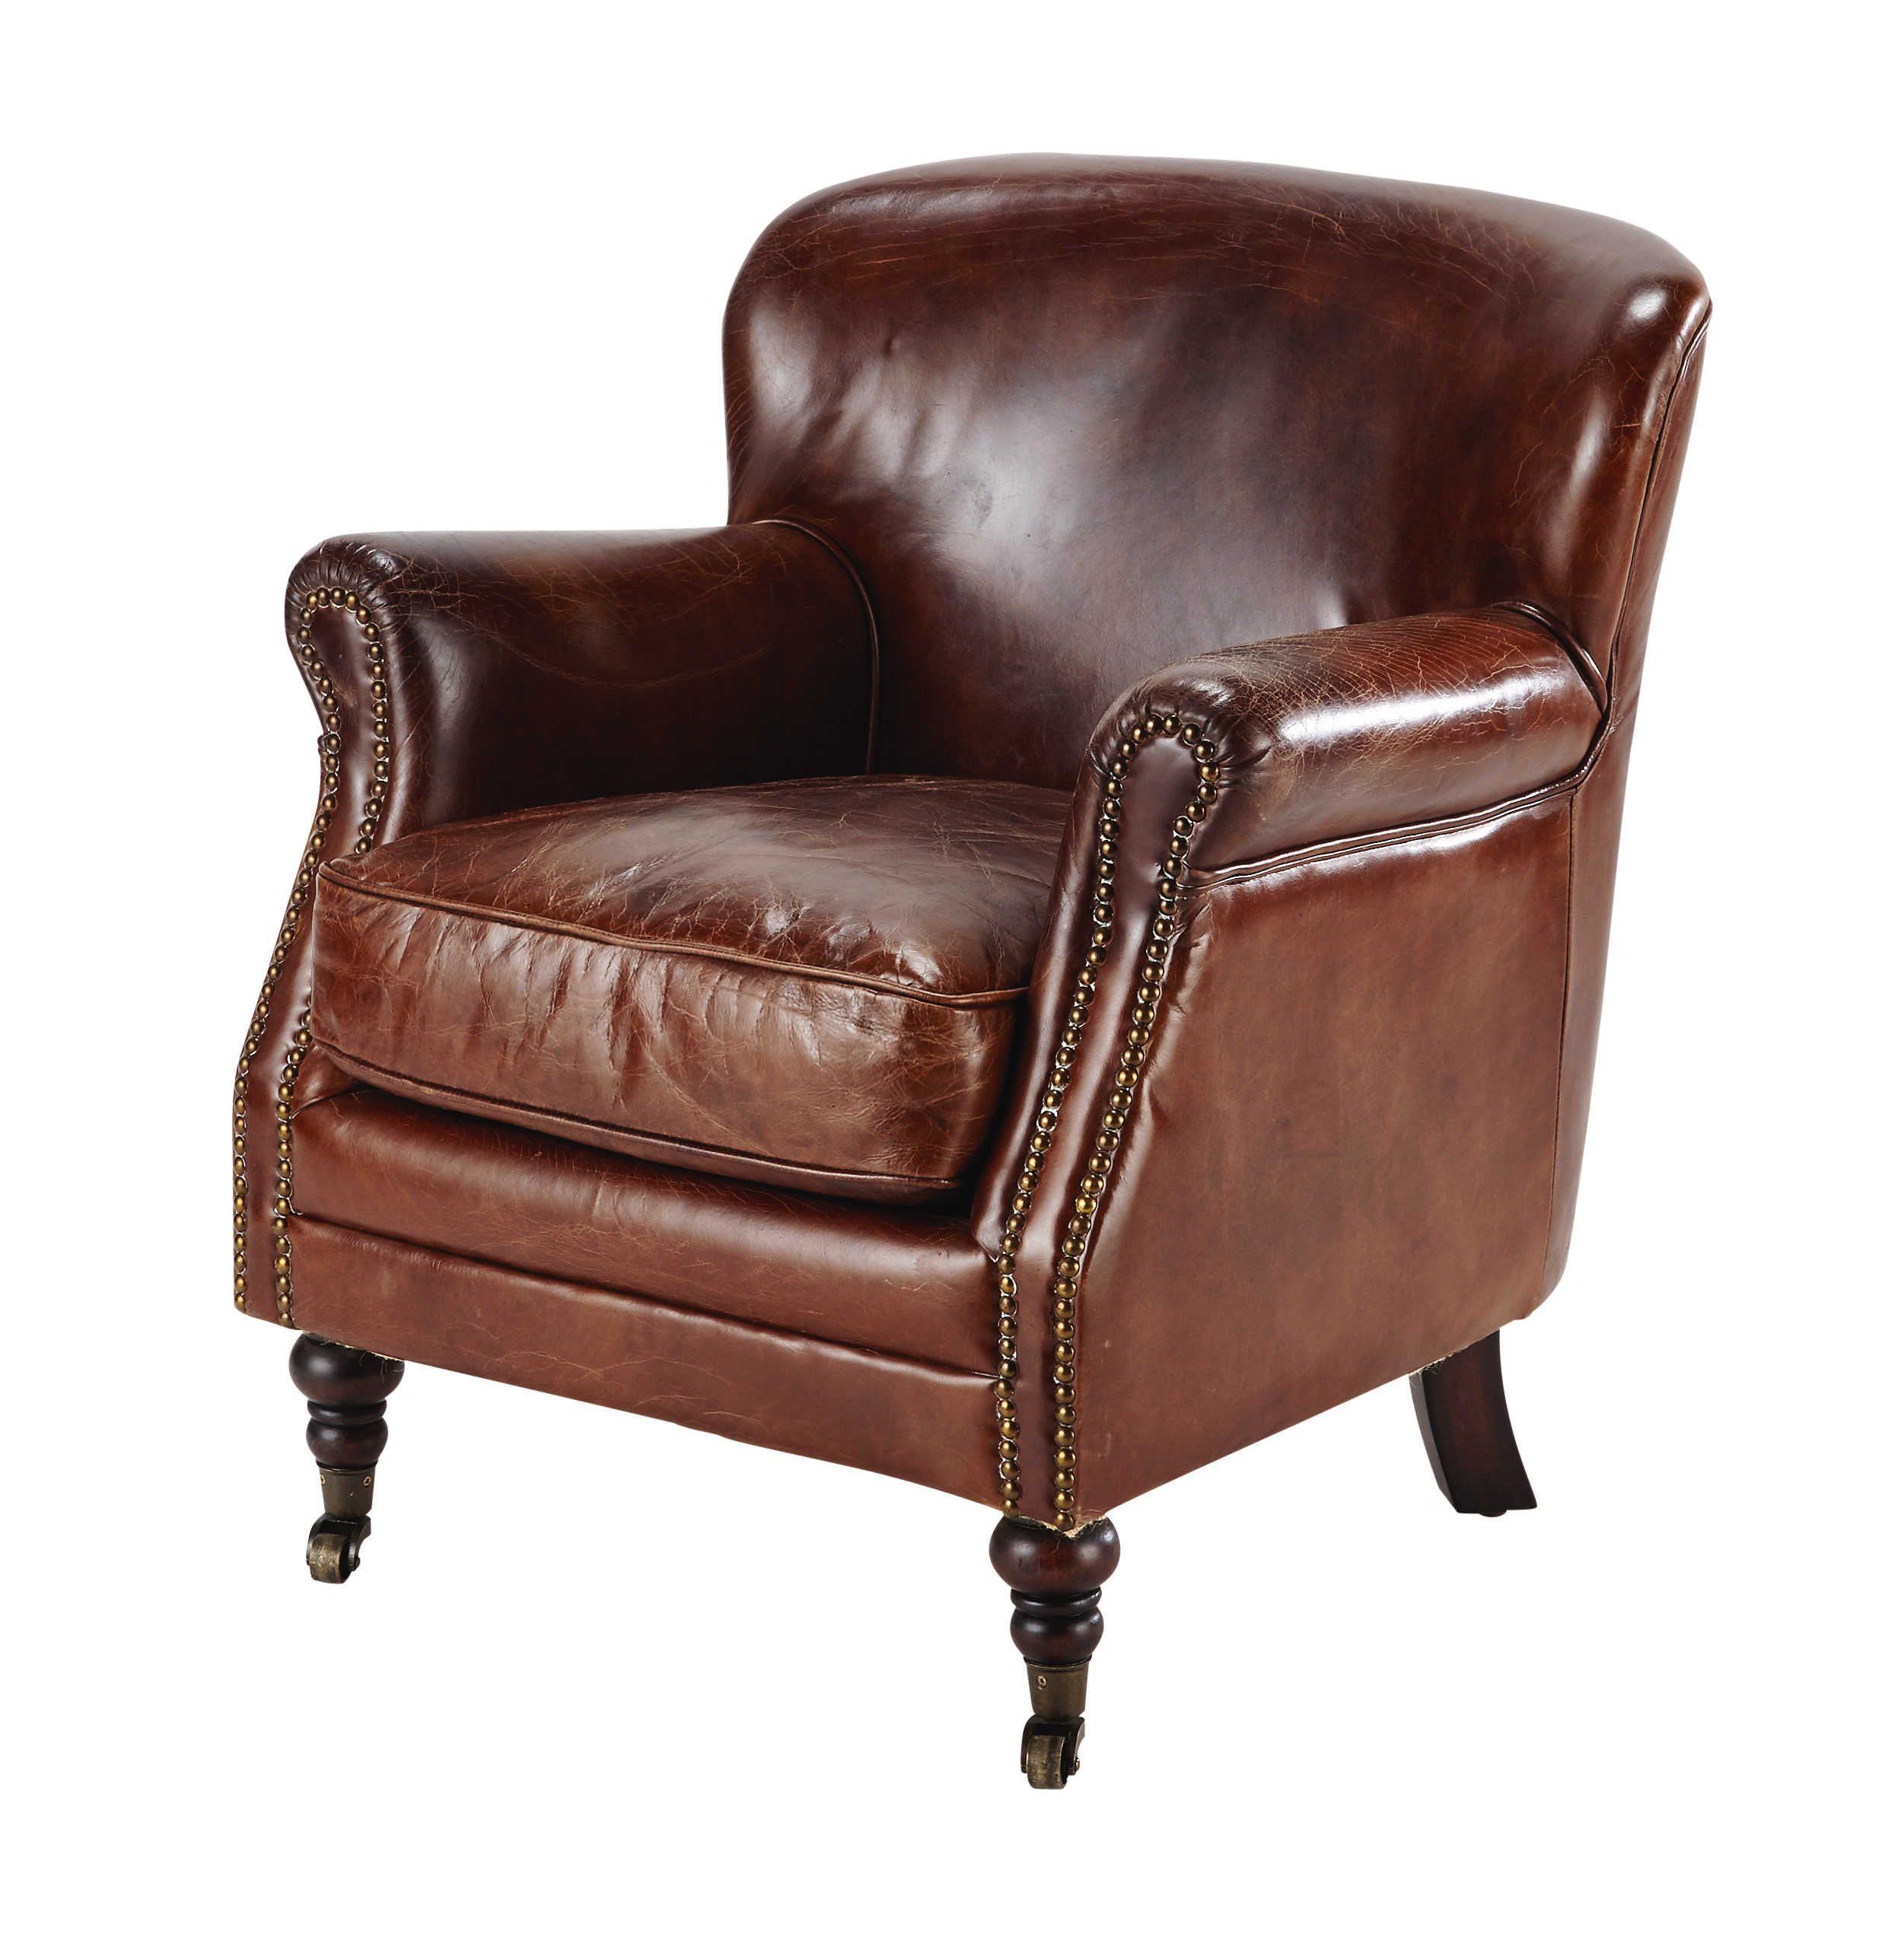 Leather Armchair On Castors In Brown Orson Within Helder Armchairs (View 4 of 15)